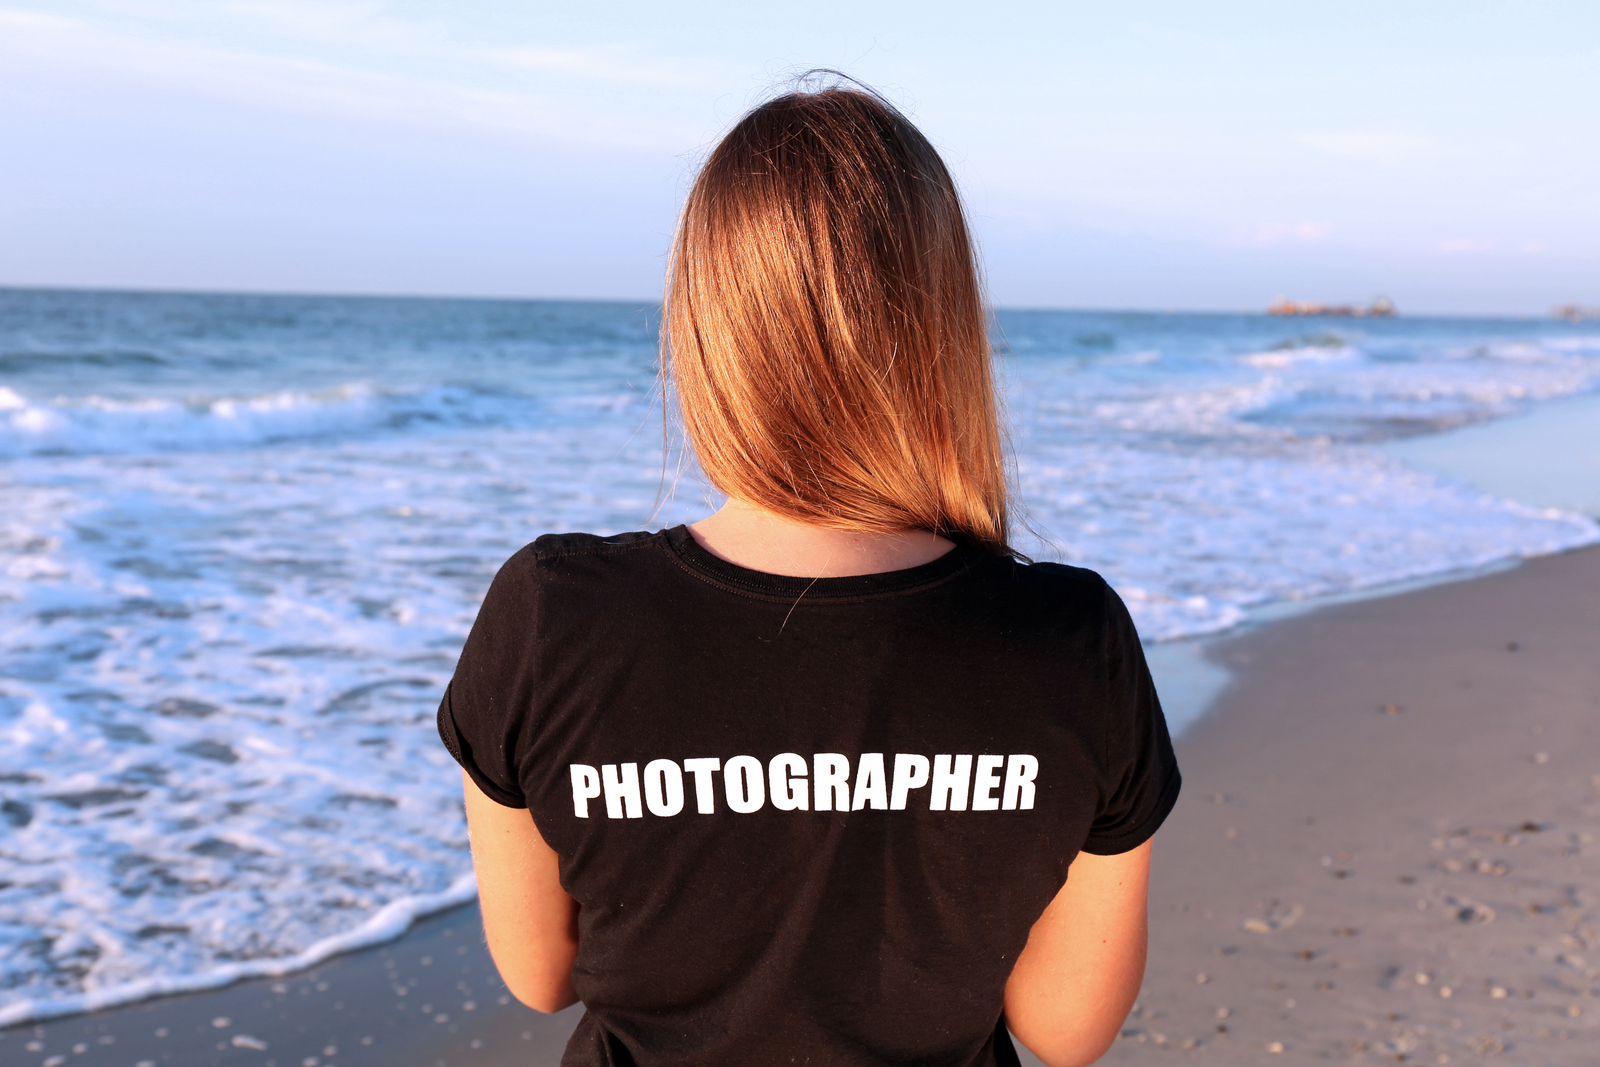 Photographer_back